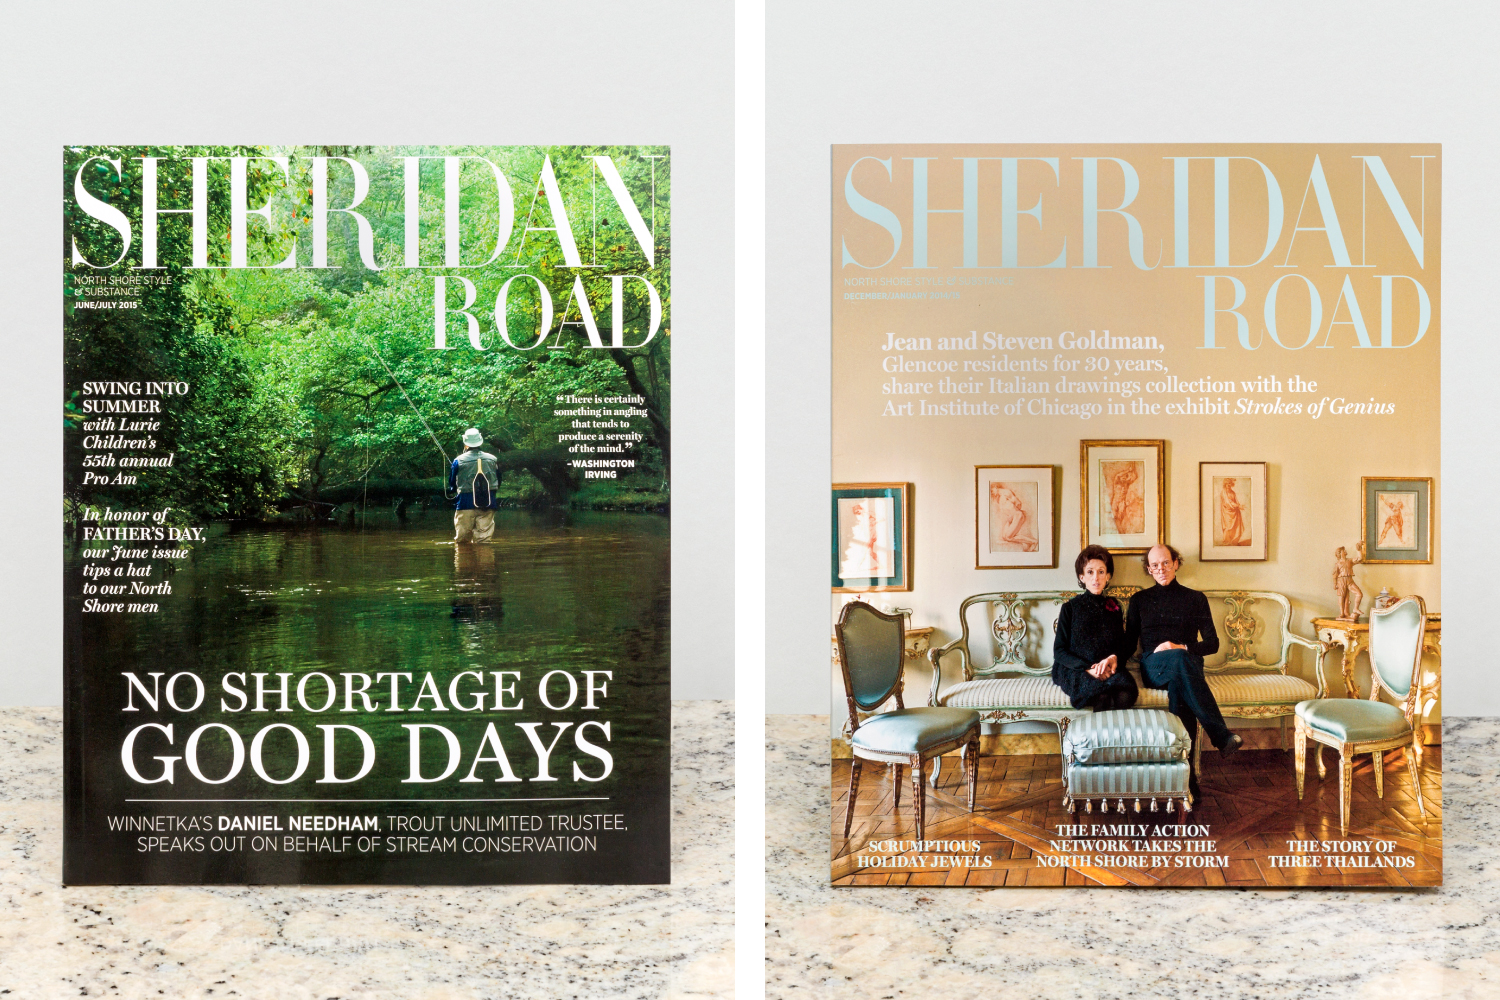 Sheridan Road magazine design and art direction.